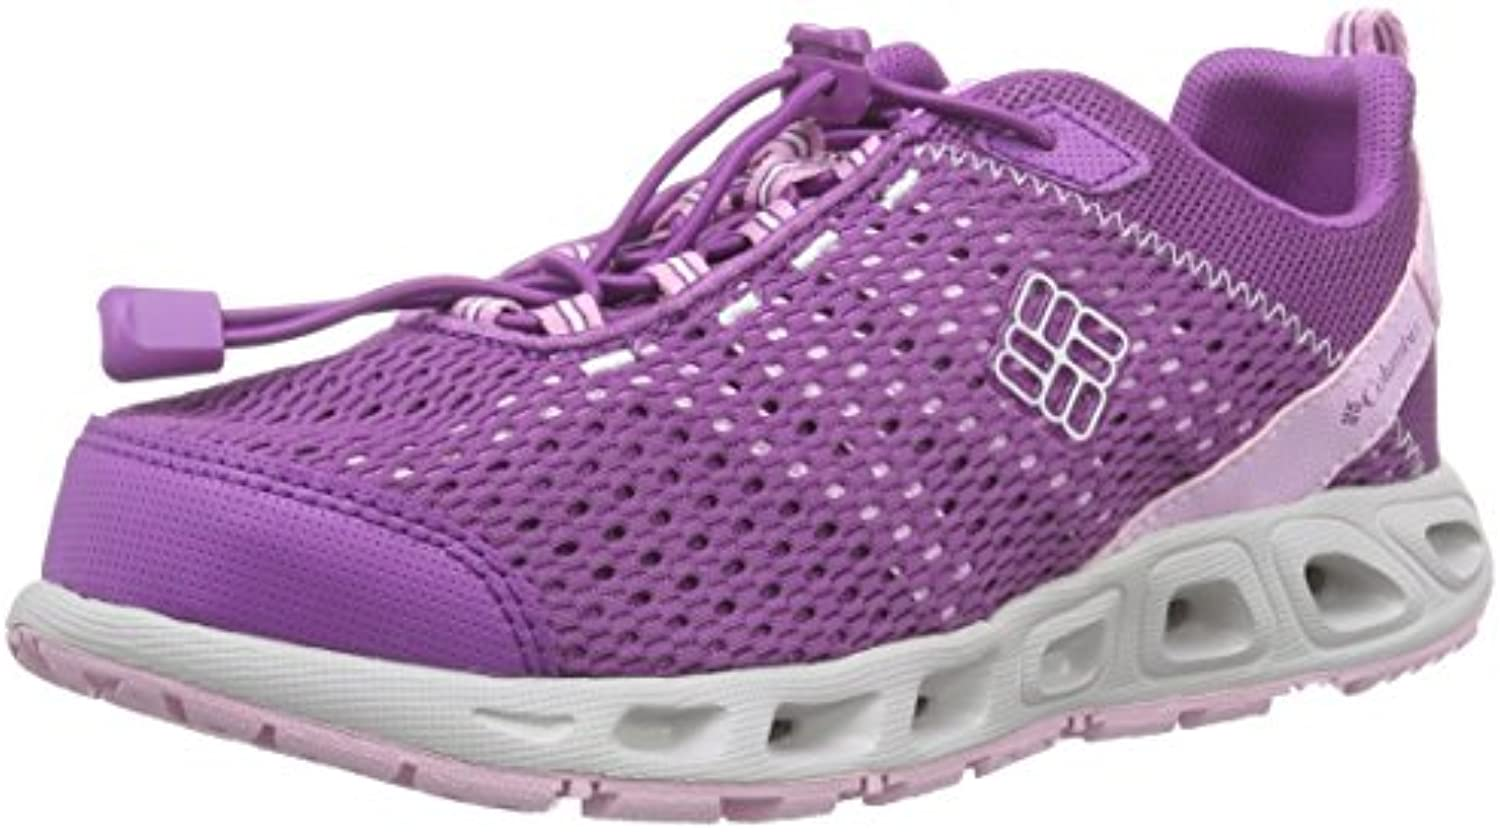 ColumbiaYOUTH Drainmaker III - Zapatillas Impermeables Chica